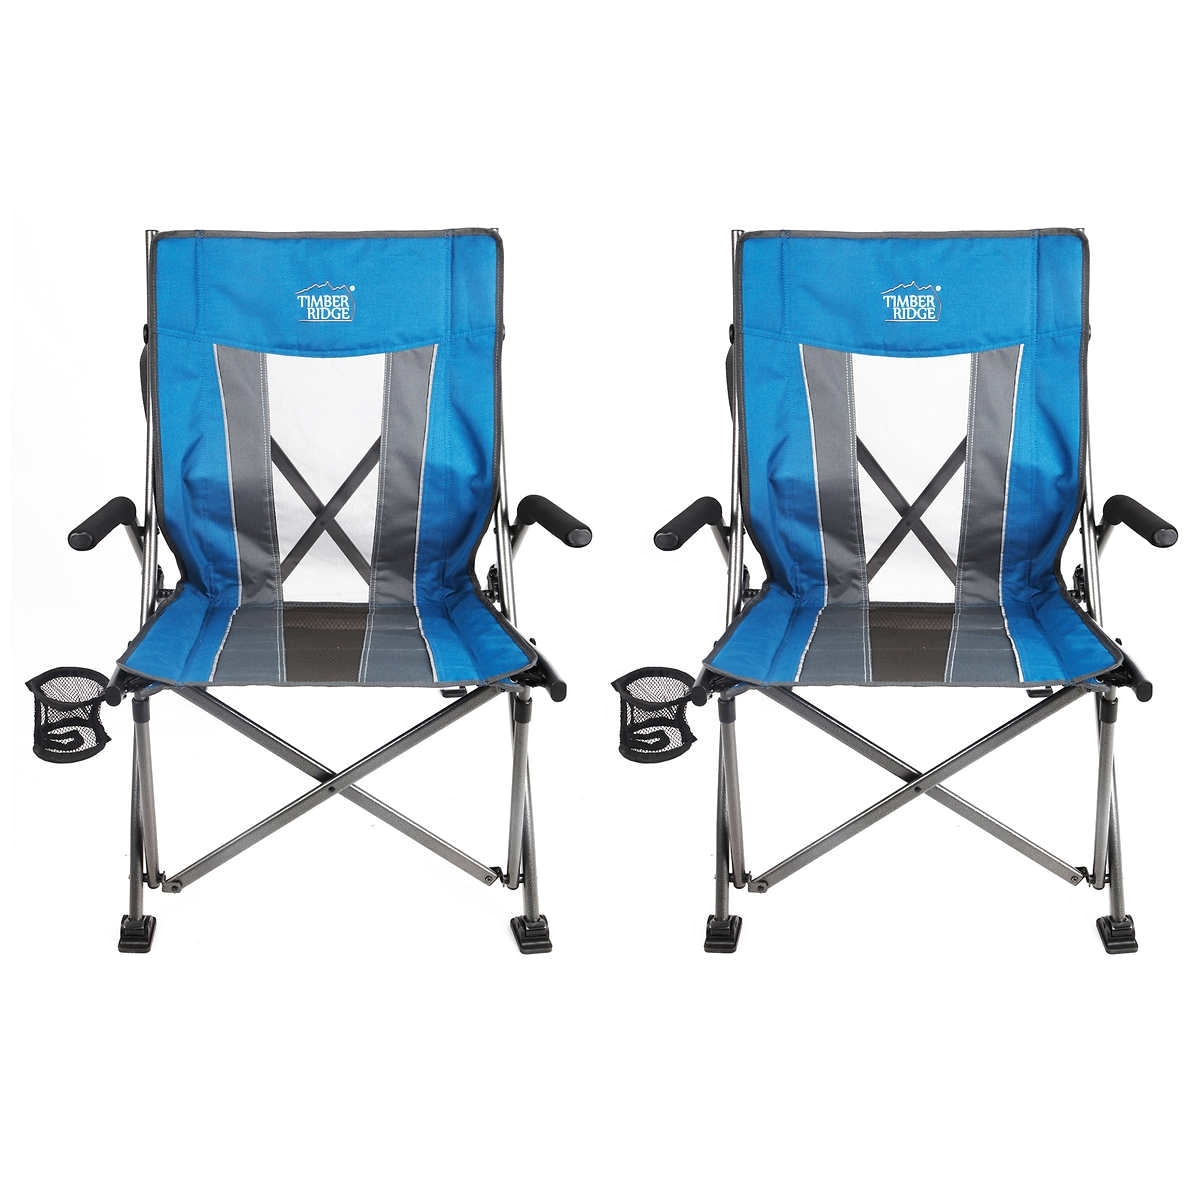 folding chair costco pictures of beach chairs and umbrella timber ridge calgary best home decoration